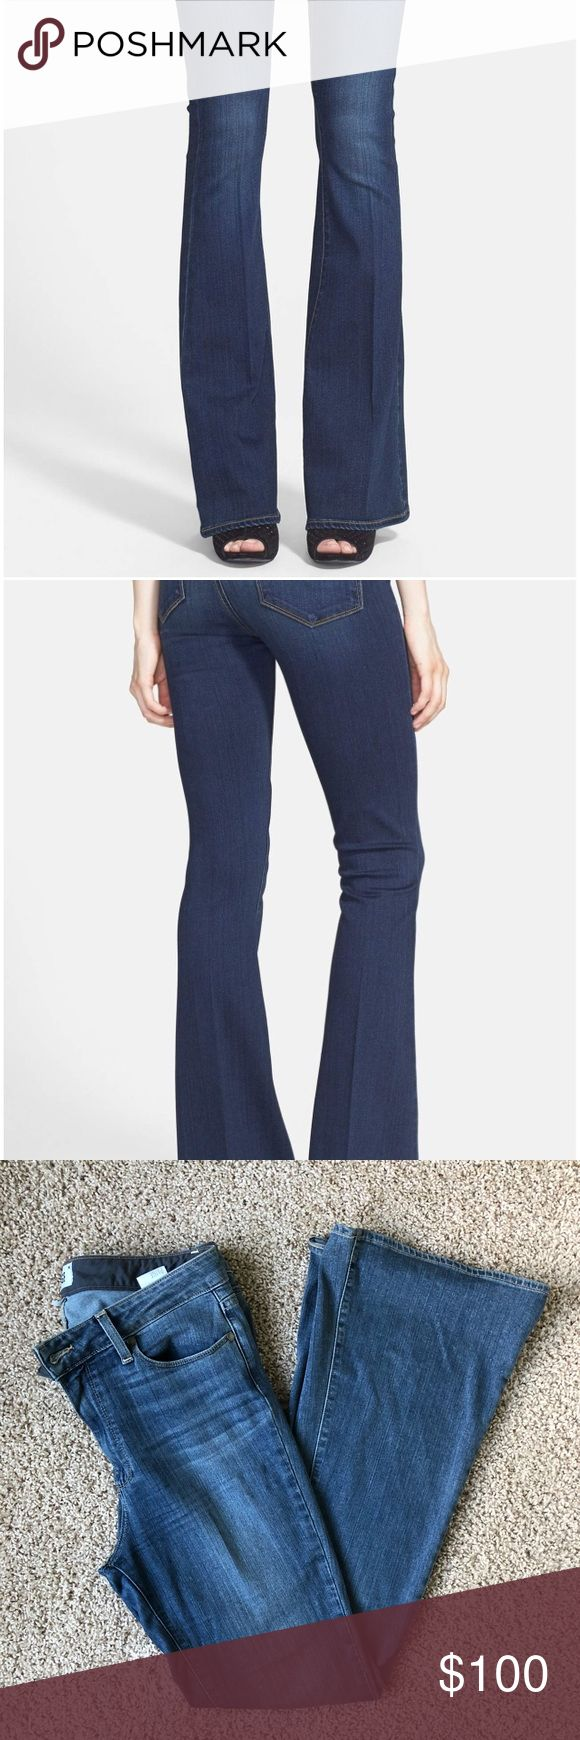 Paige premium denim bell canyon high rise PETITE Gorgeous pair of Paige premium denim high-rise flares! Excellent used condition, worn only a handful of times. They are just too big, as I've lost a little weight! Take note, these are petite! Inseam is 31.5 inches PAIGE Jeans Flare & Wide Leg